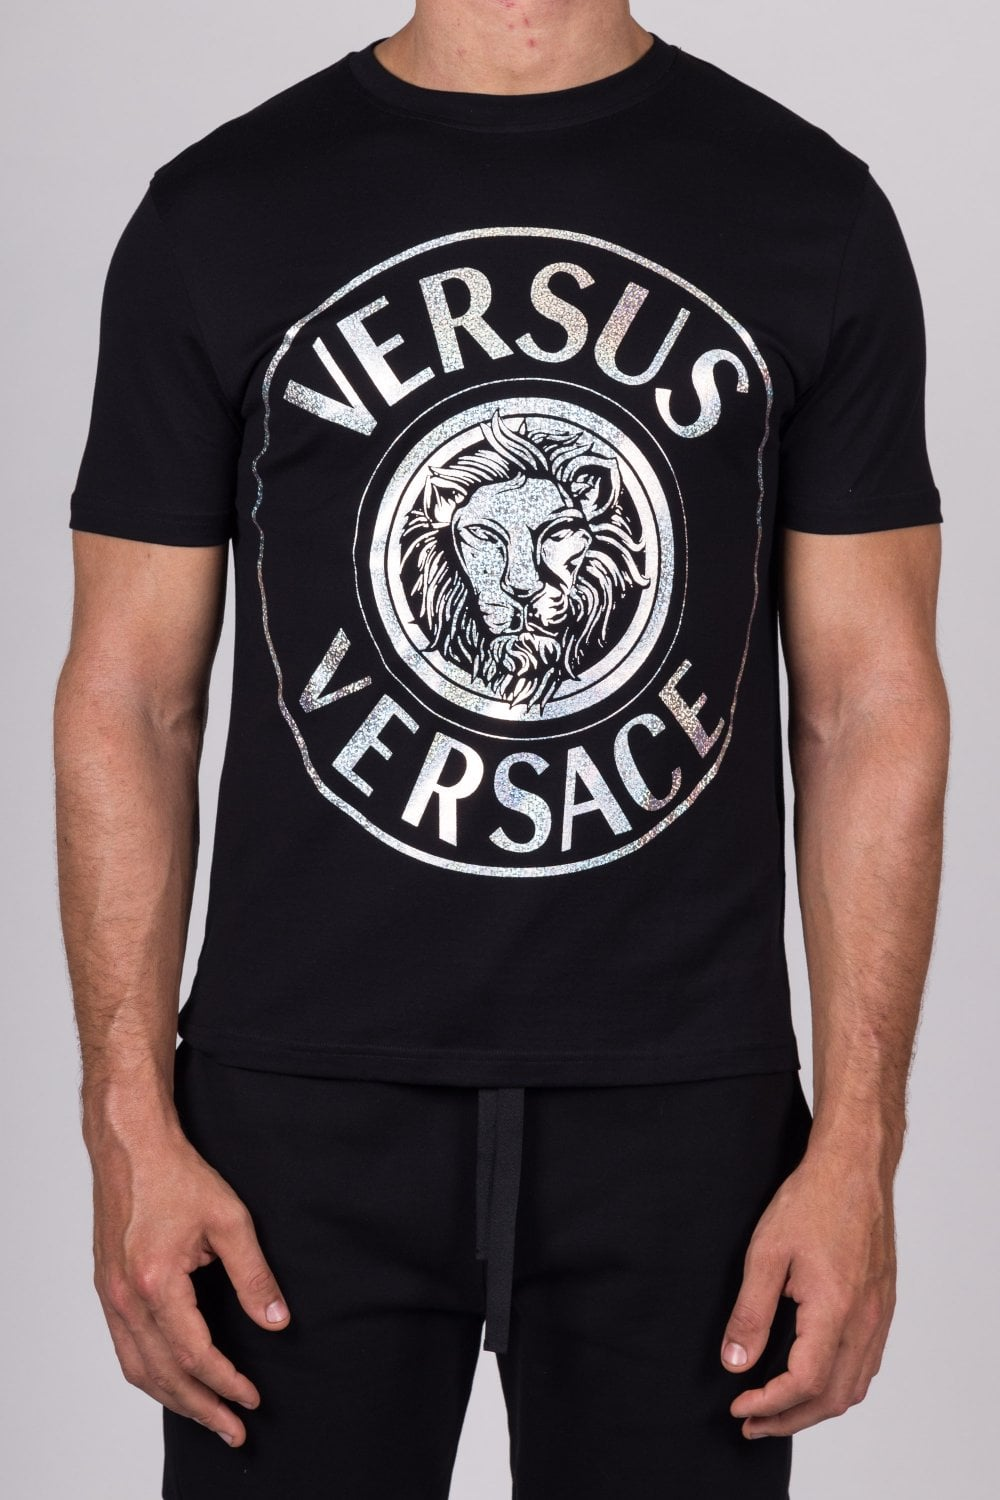 Versus Versace   Lion Logo T-Shirt Black   Intro b74972f00be